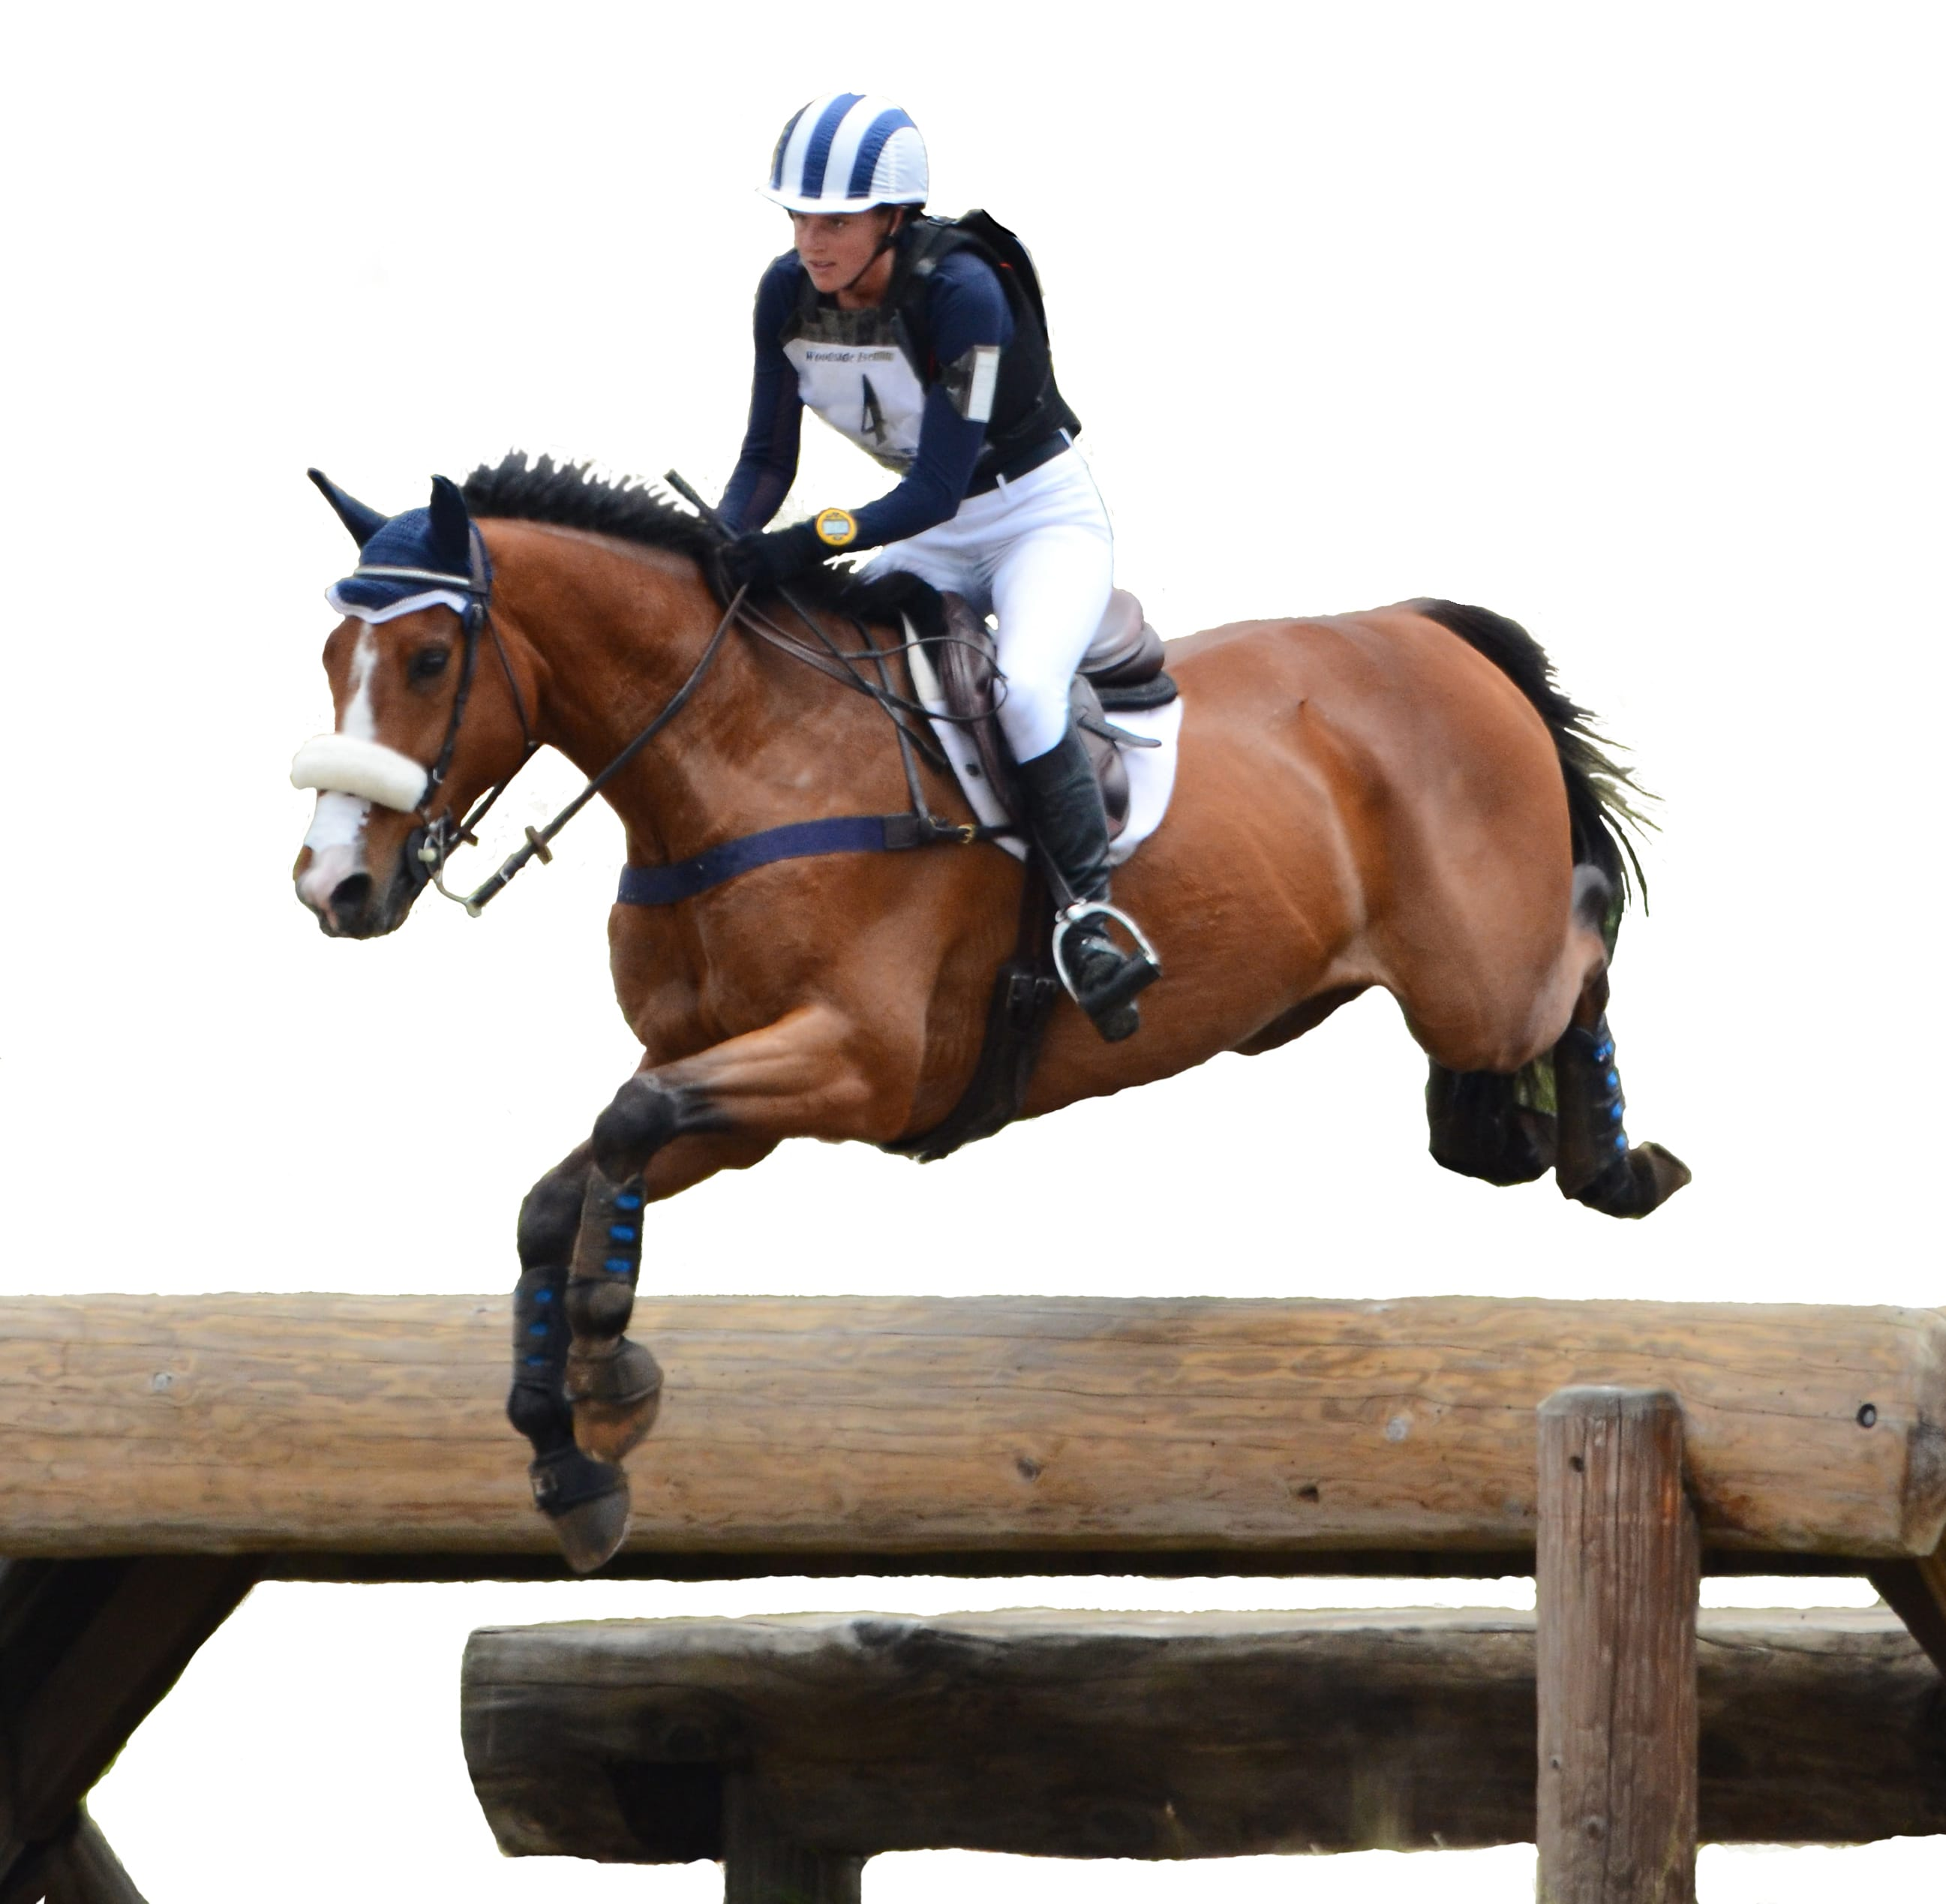 Horse jumping during competition